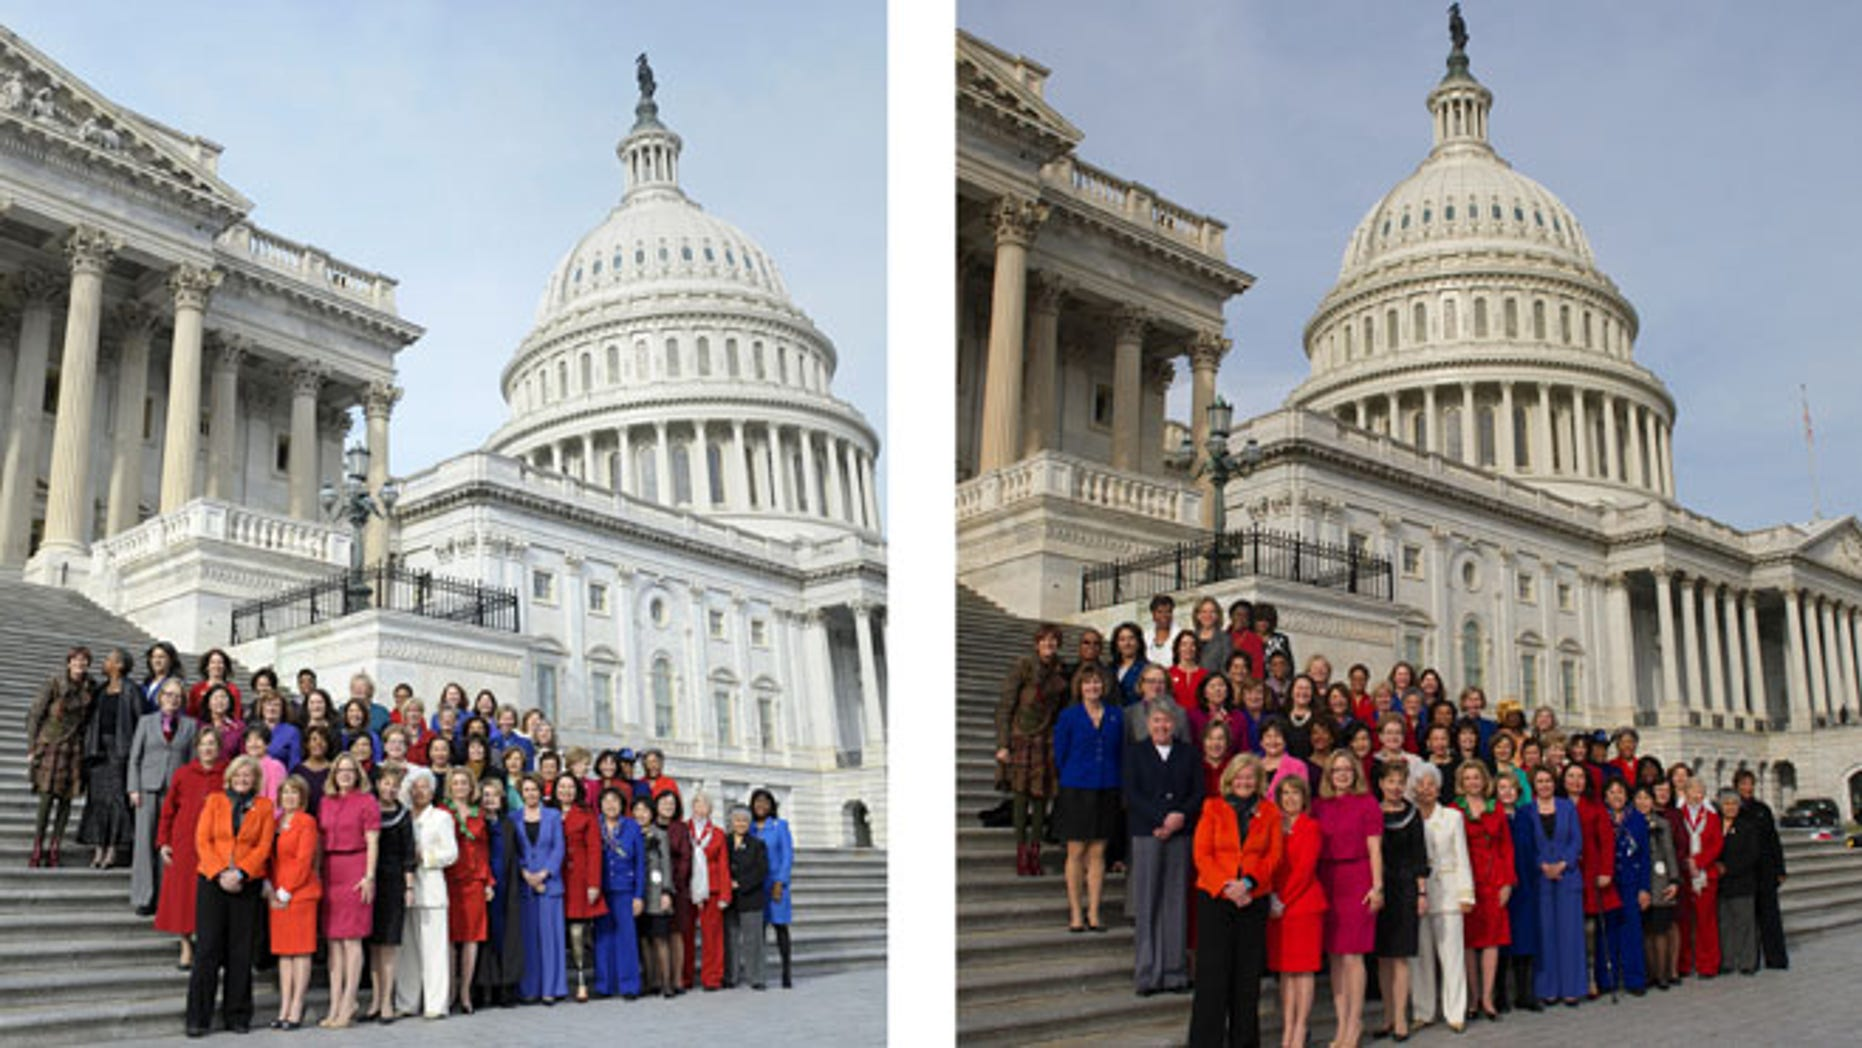 This combo of two photos shows, at left, an Associated Press photo taken Jan. 3, 2013 of female Democratic House members on Capitol Hill, and at right, a screen grab from Rep. Nancy Pelosi's Flickr page of an altered photo. Four additional members who were late to the original shoot were added in the back row.